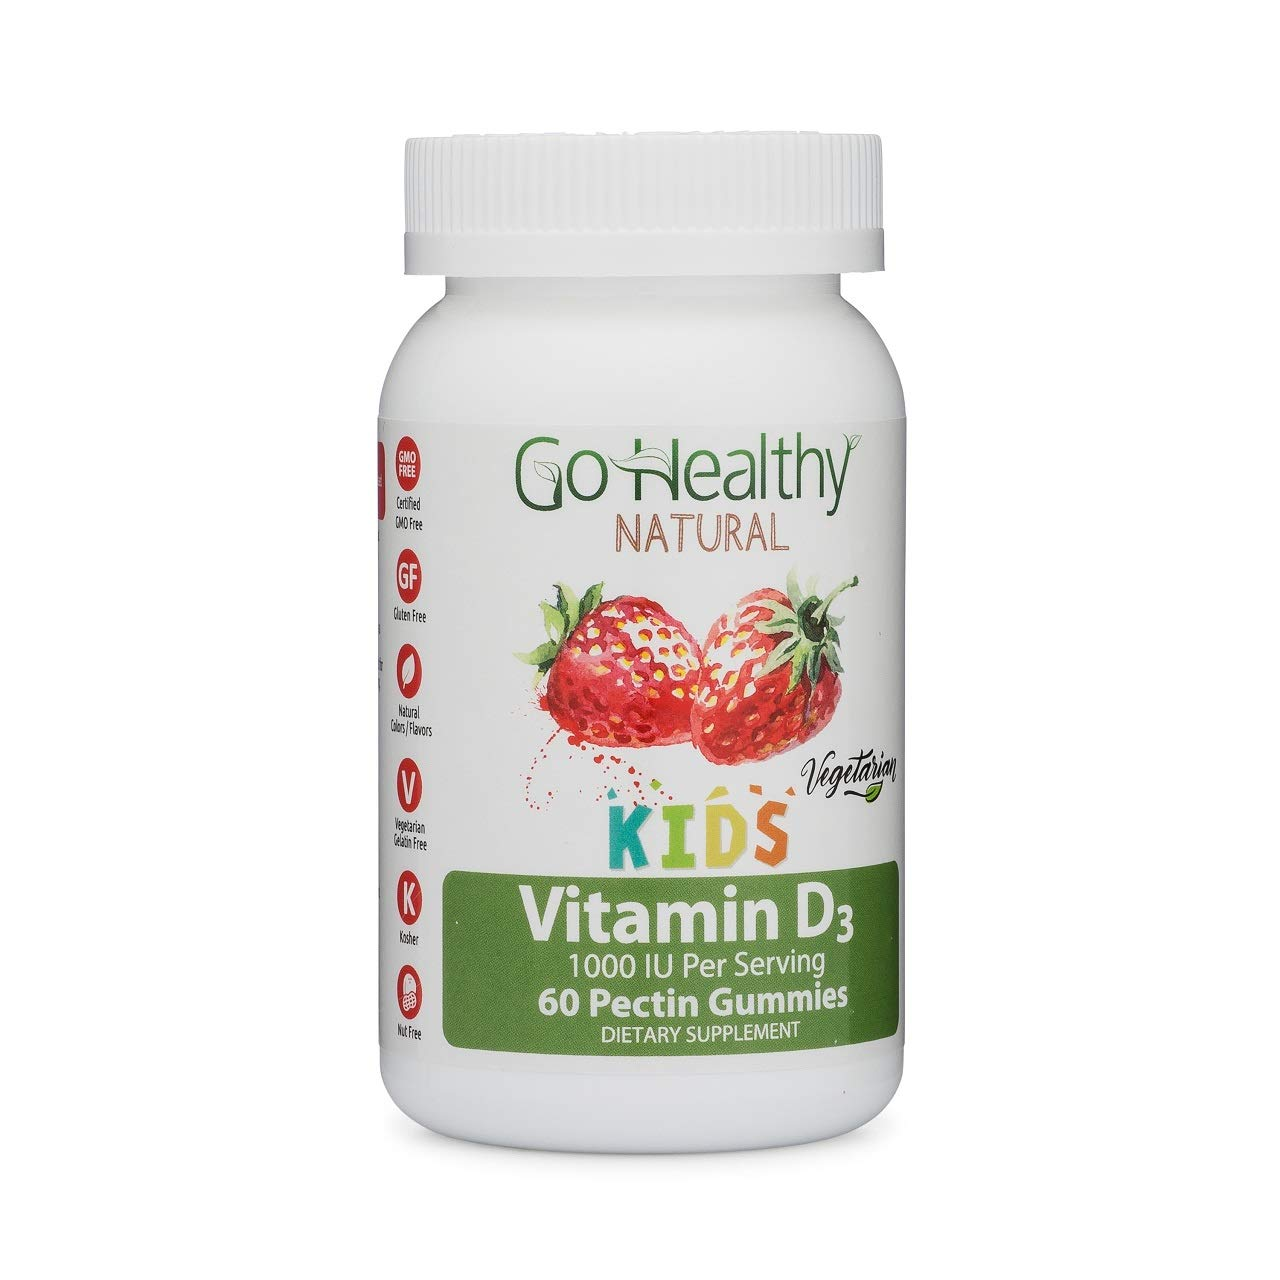 Amazon.com: Go Healthy Natural Multivitamin Gummies for ...